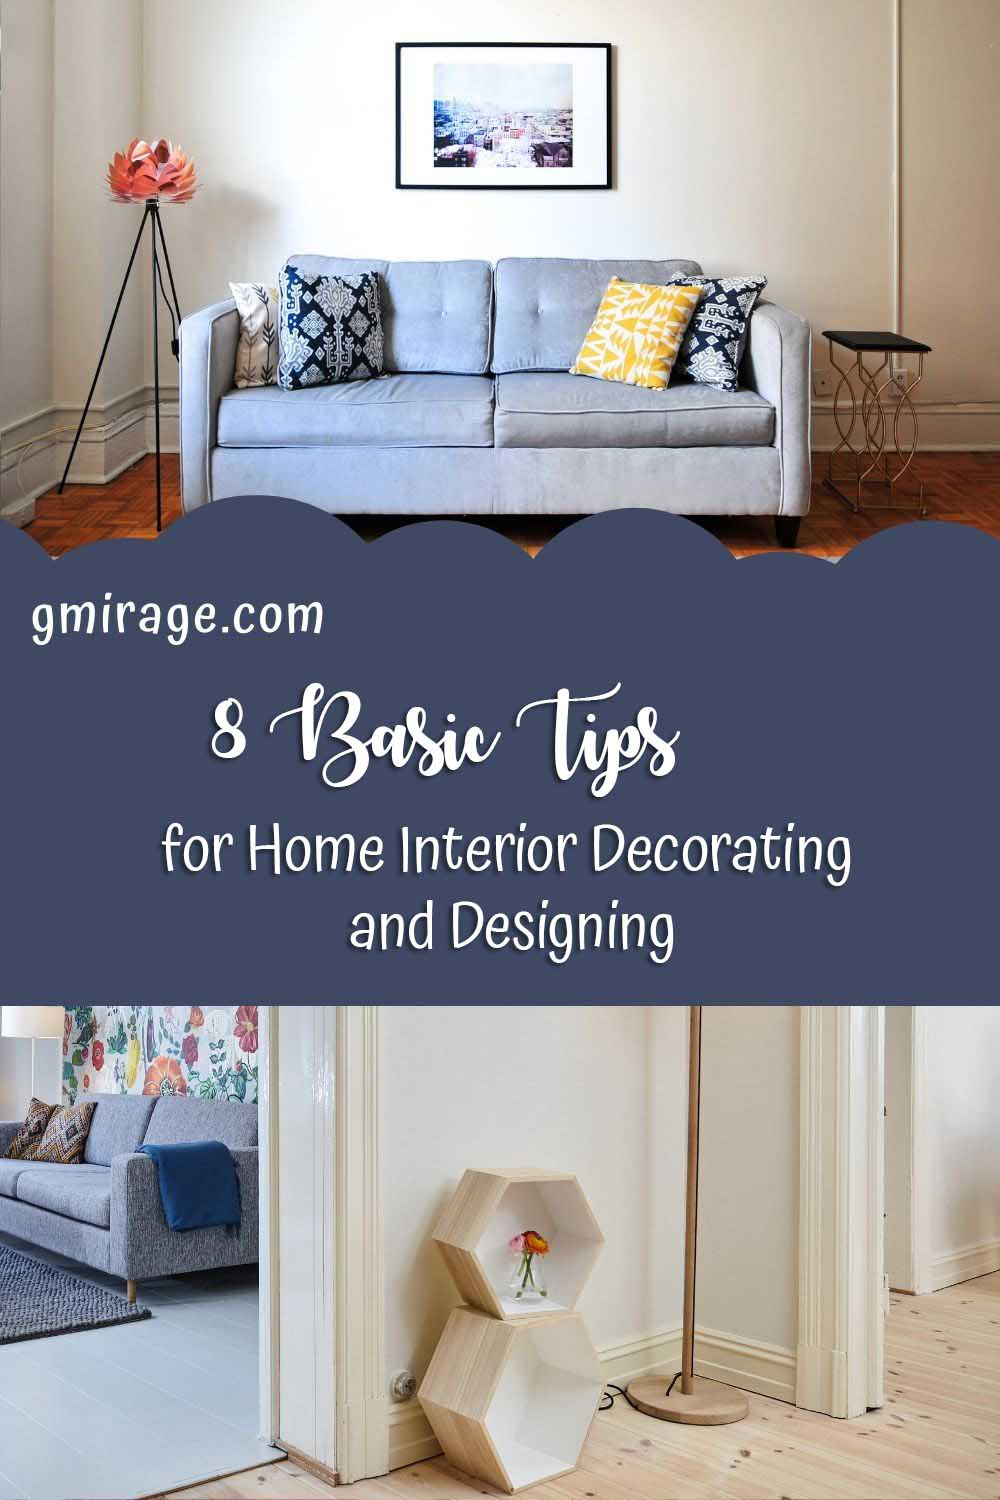 8 Basic Tips for Home Interior Decorating and Designing